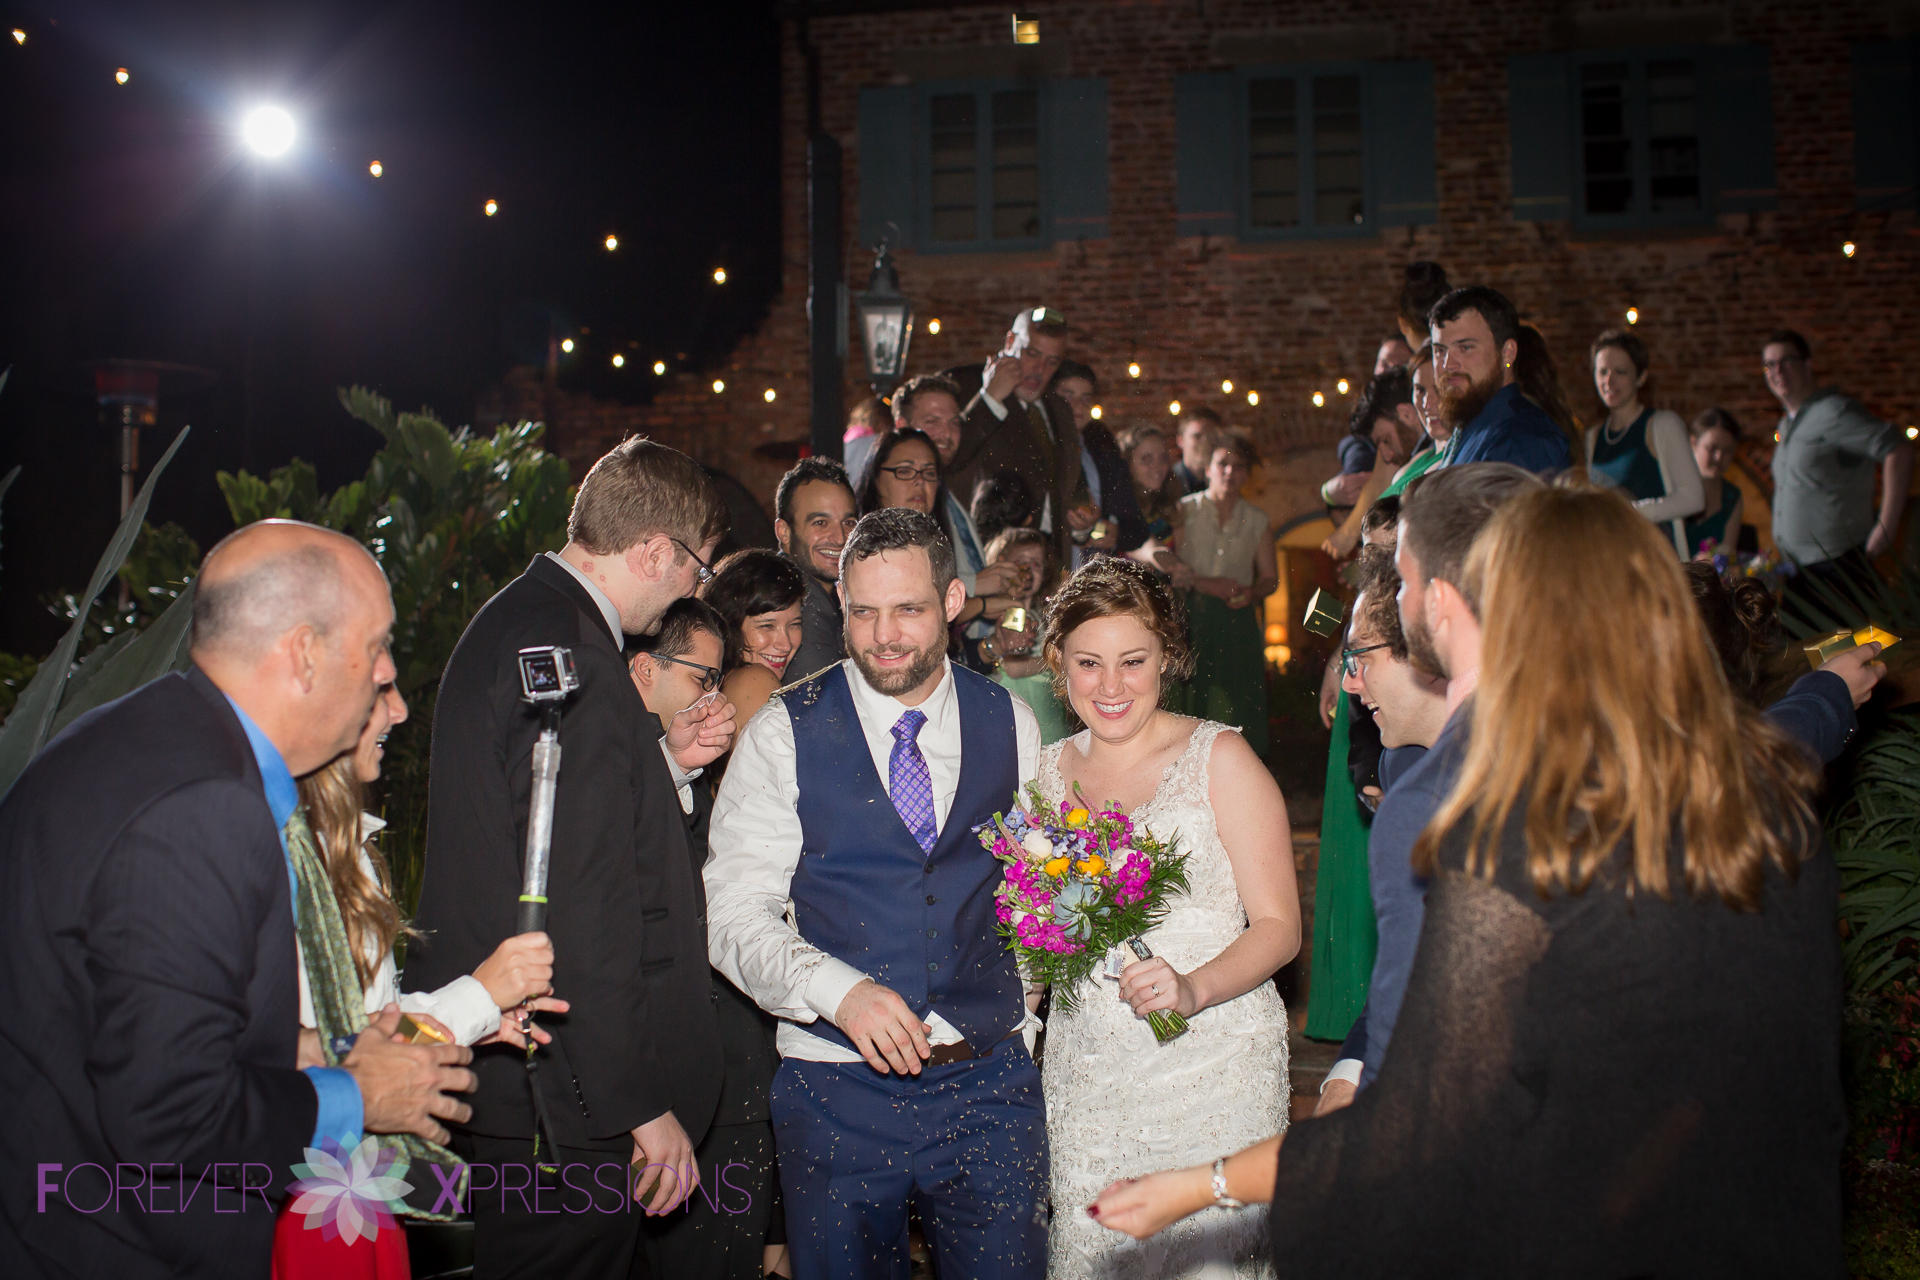 Forever_Xpressions_Wedding_Photography_Winterpark_Casa_Feliz-1193